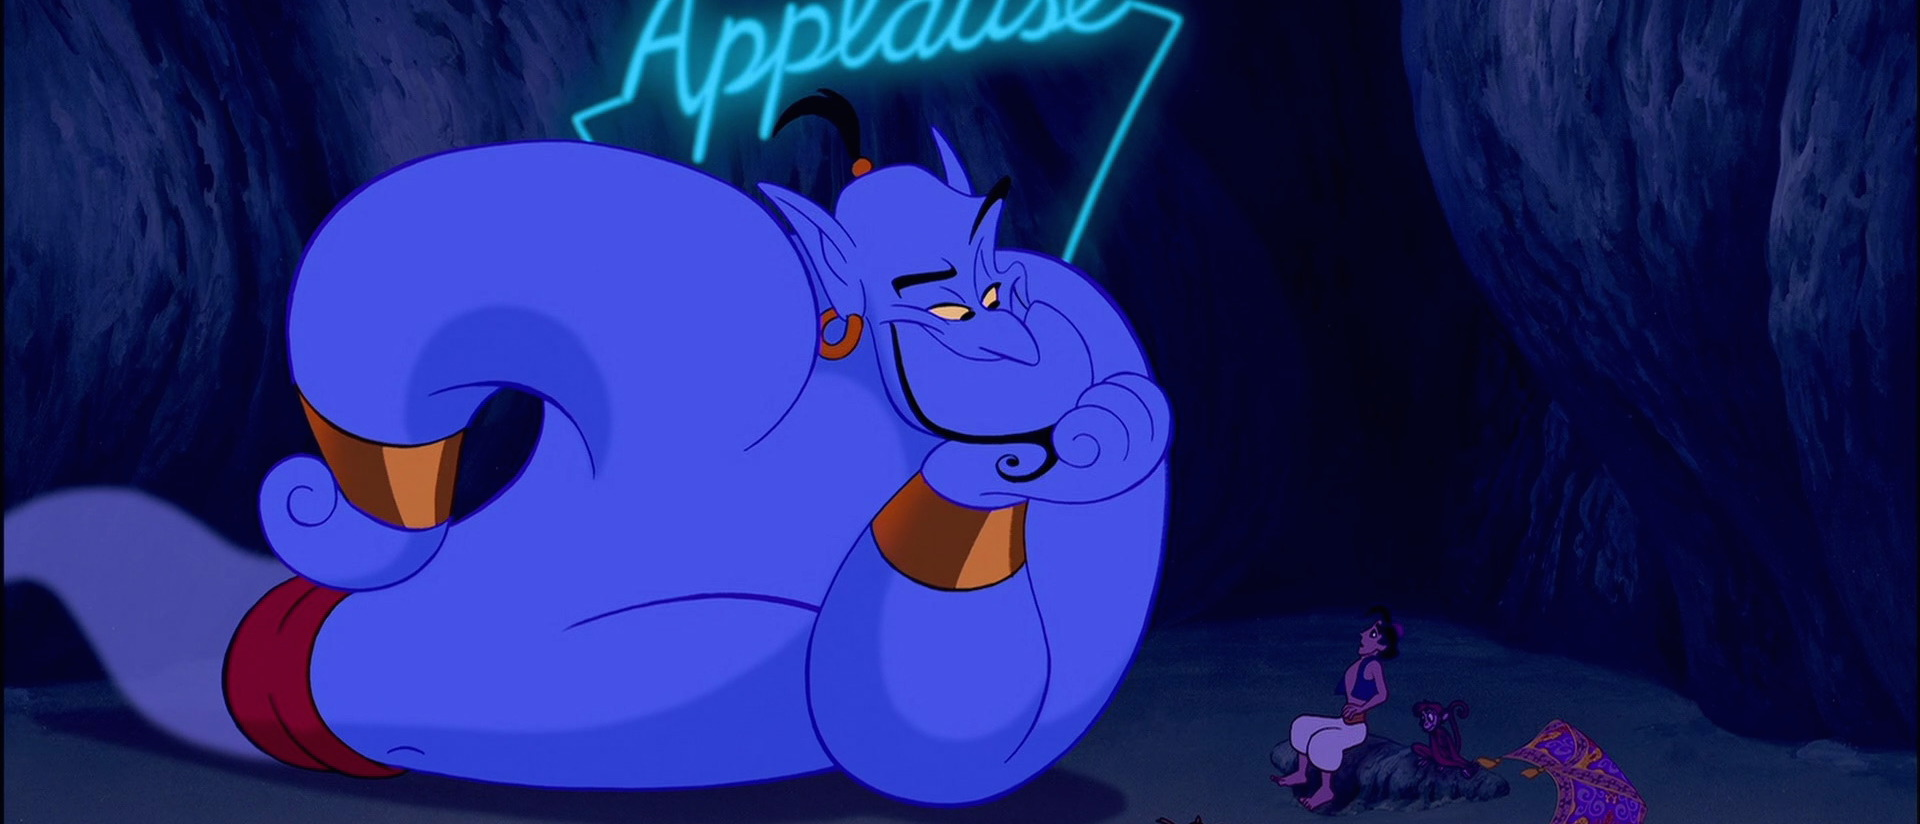 Aladdin Fan Theory Confirmed Yes That Is The Genie Story Books Of Aladin